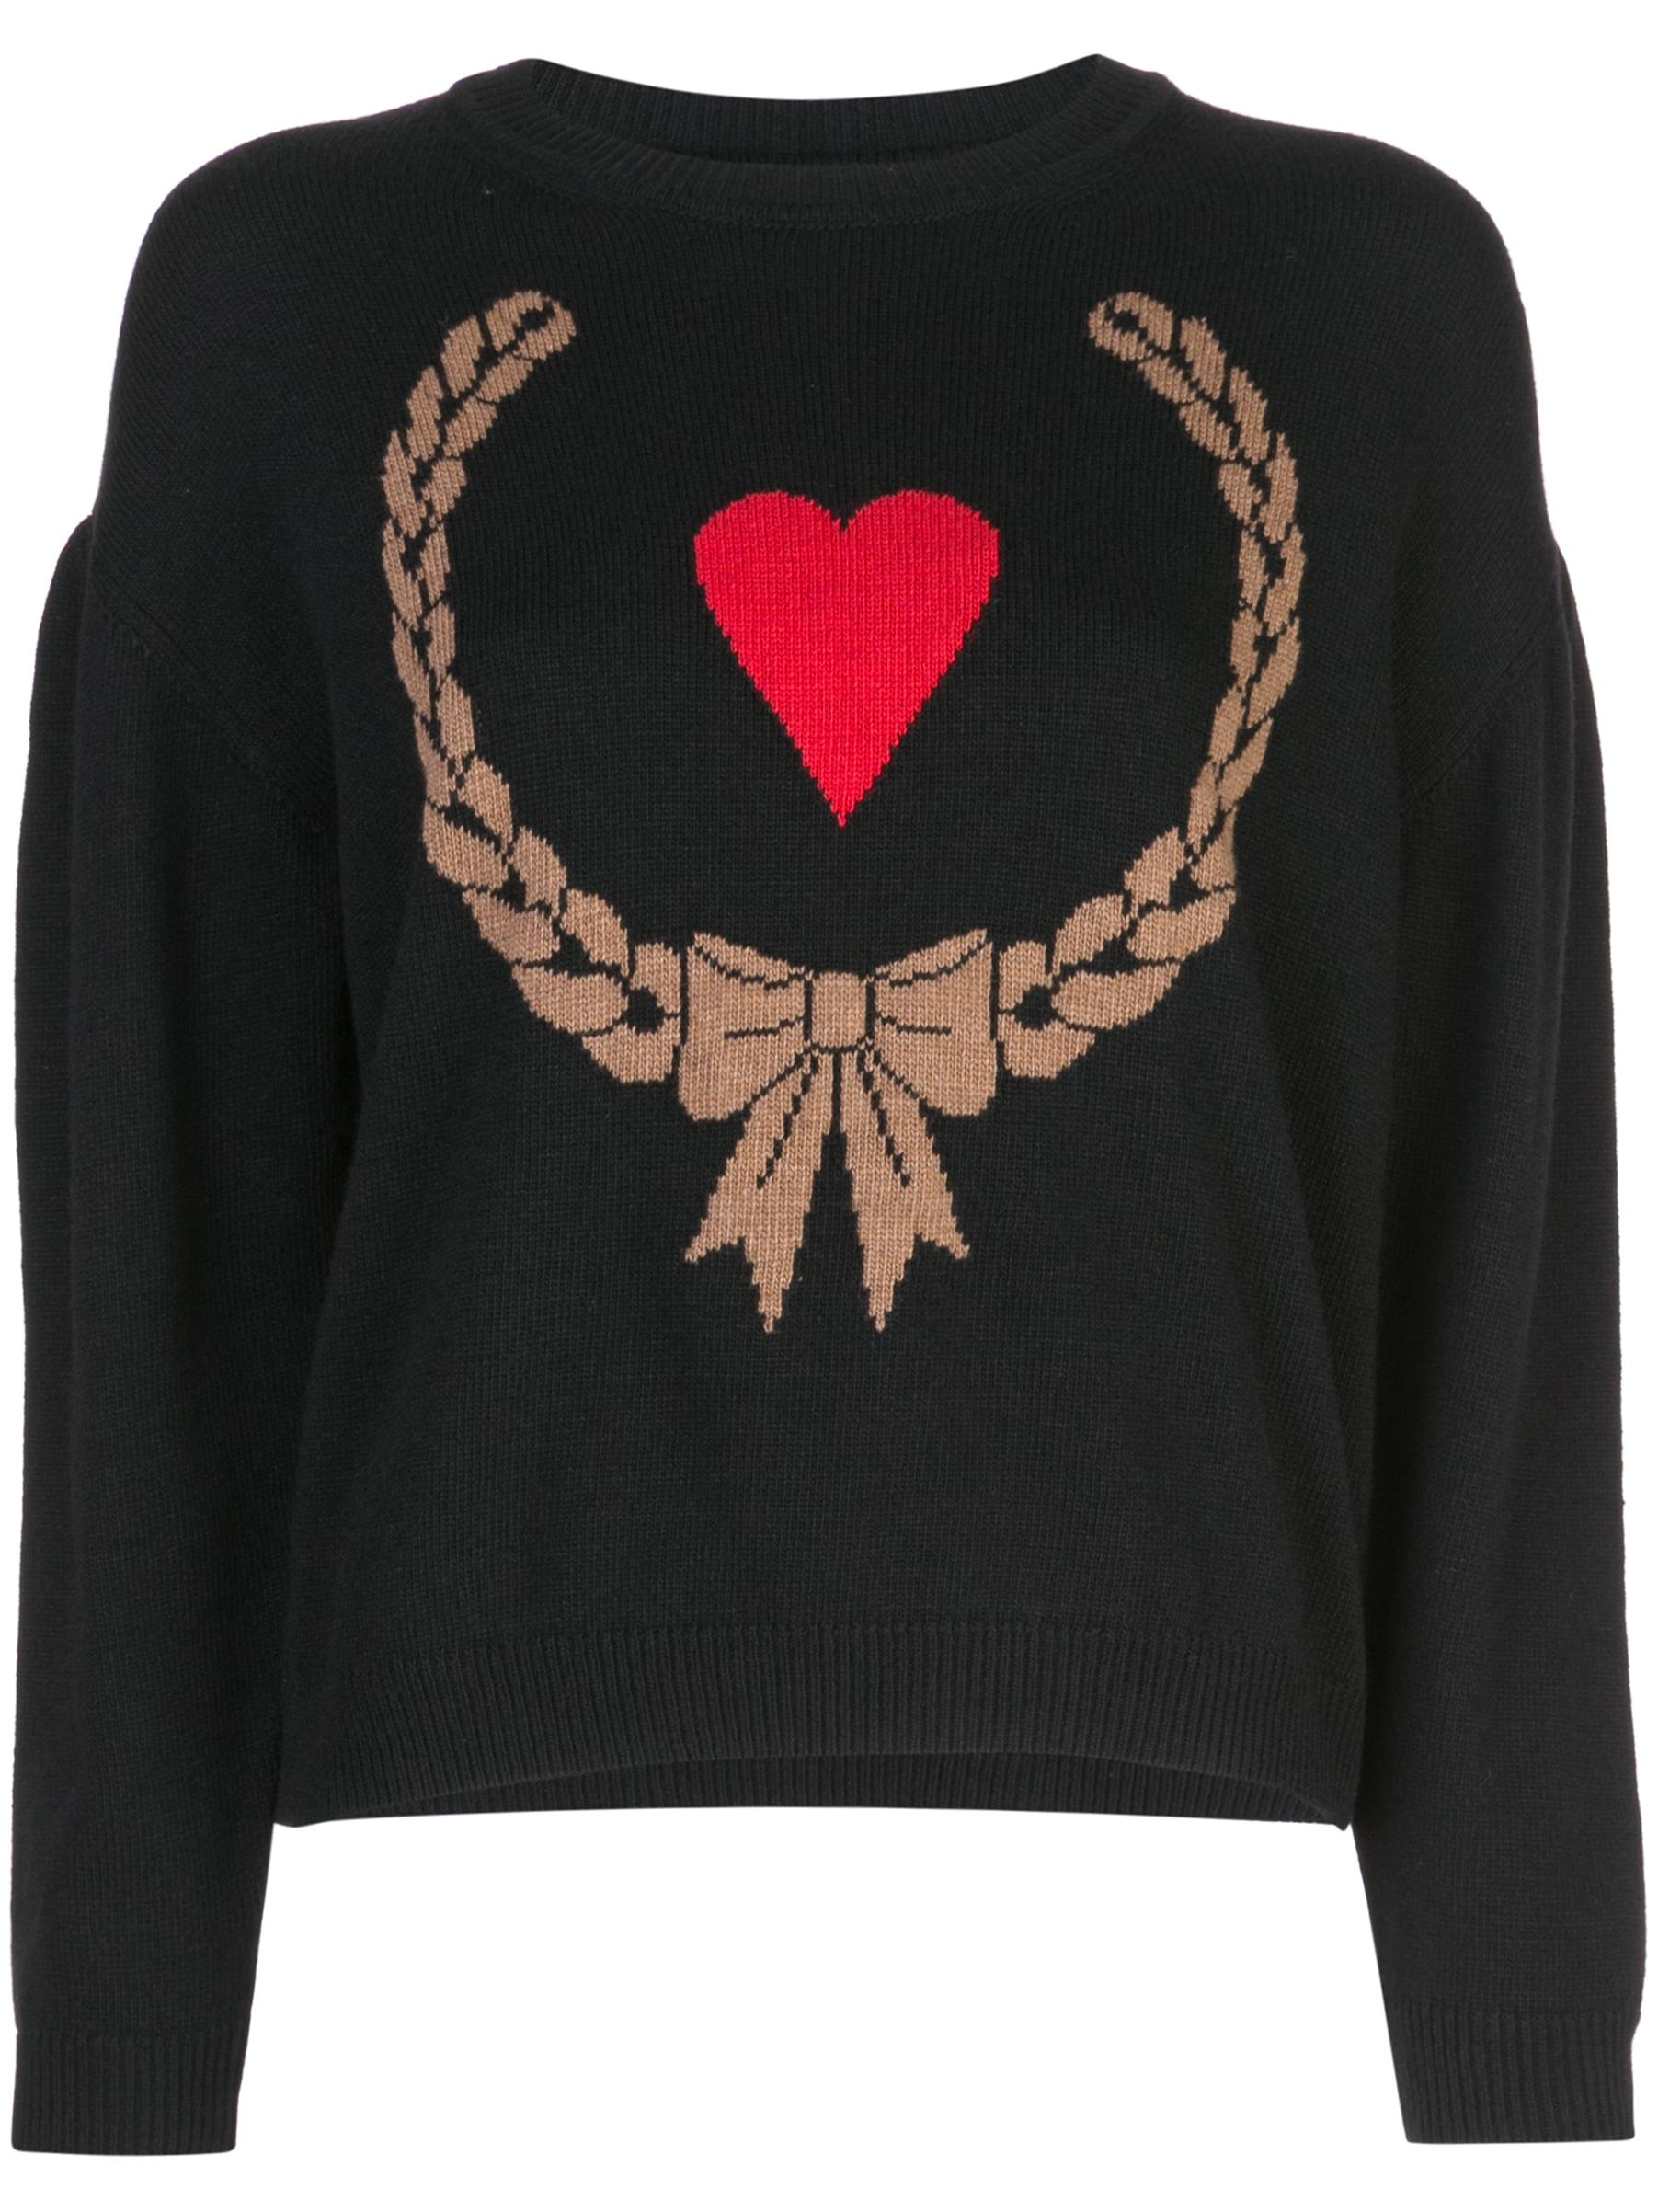 Long Sleeve Heart Graphic Print Sweater